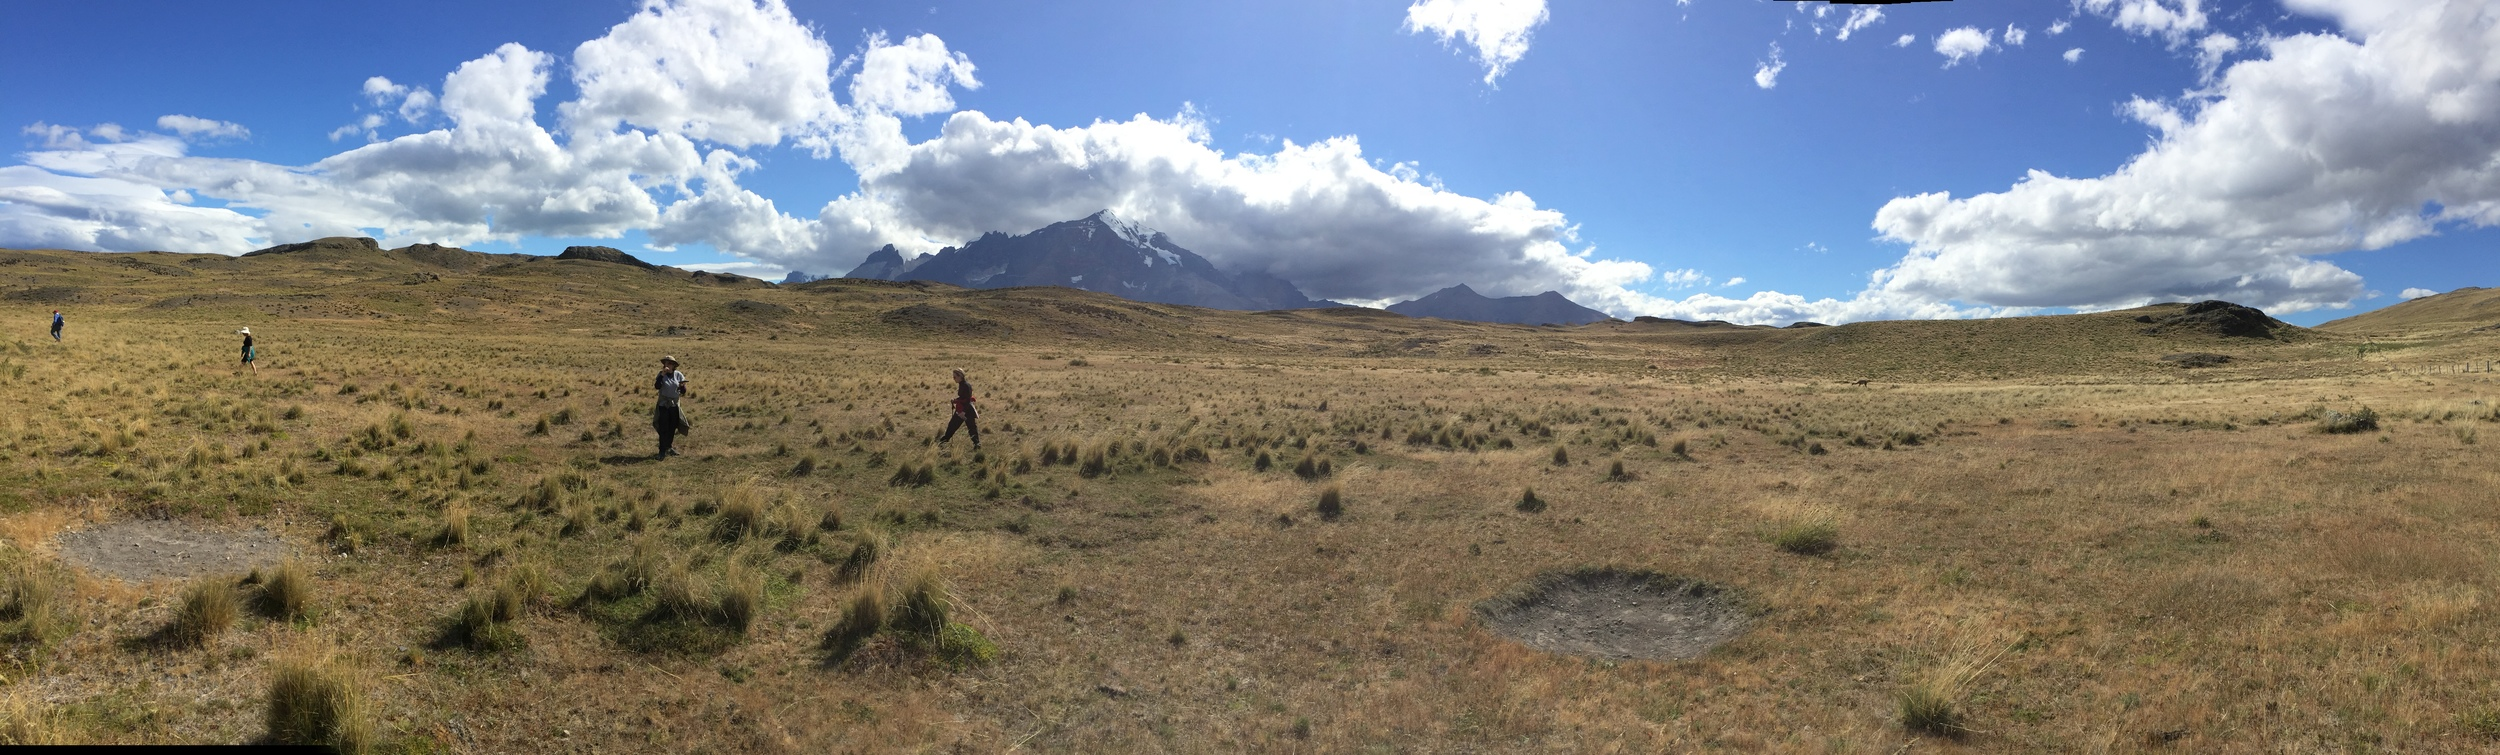 My fellow hikers in guanaco country in Torres del Paine National Park